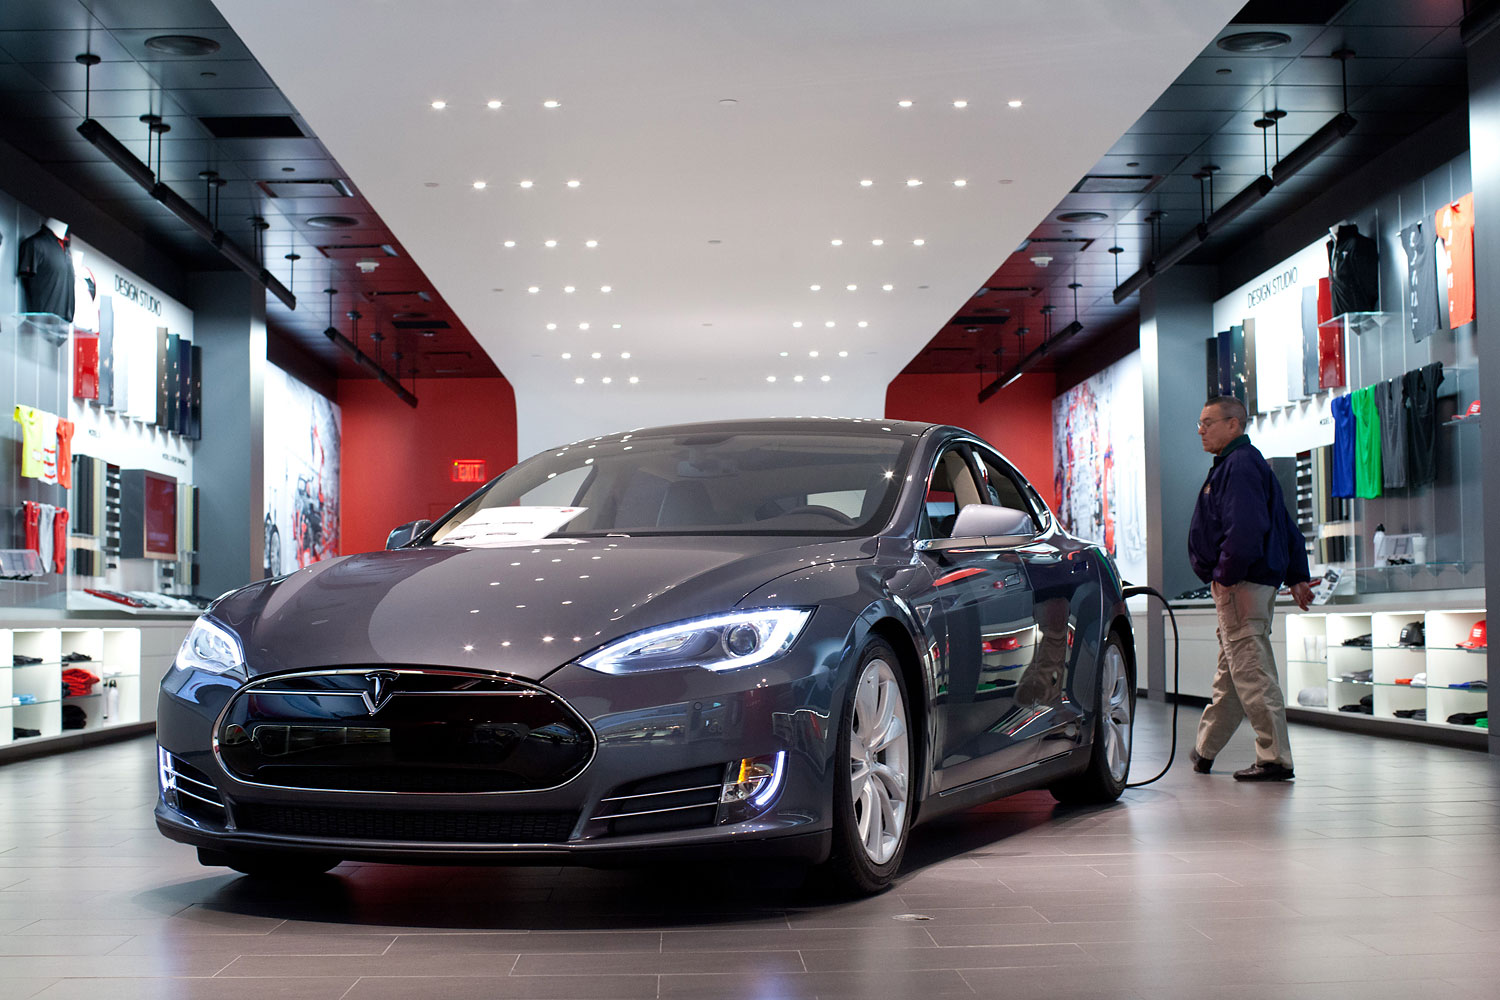 A Model S with sits on display at the Tesla store in the Short Hills Mall in Short Hills, NJ, Wednesday, March 12, 2014.